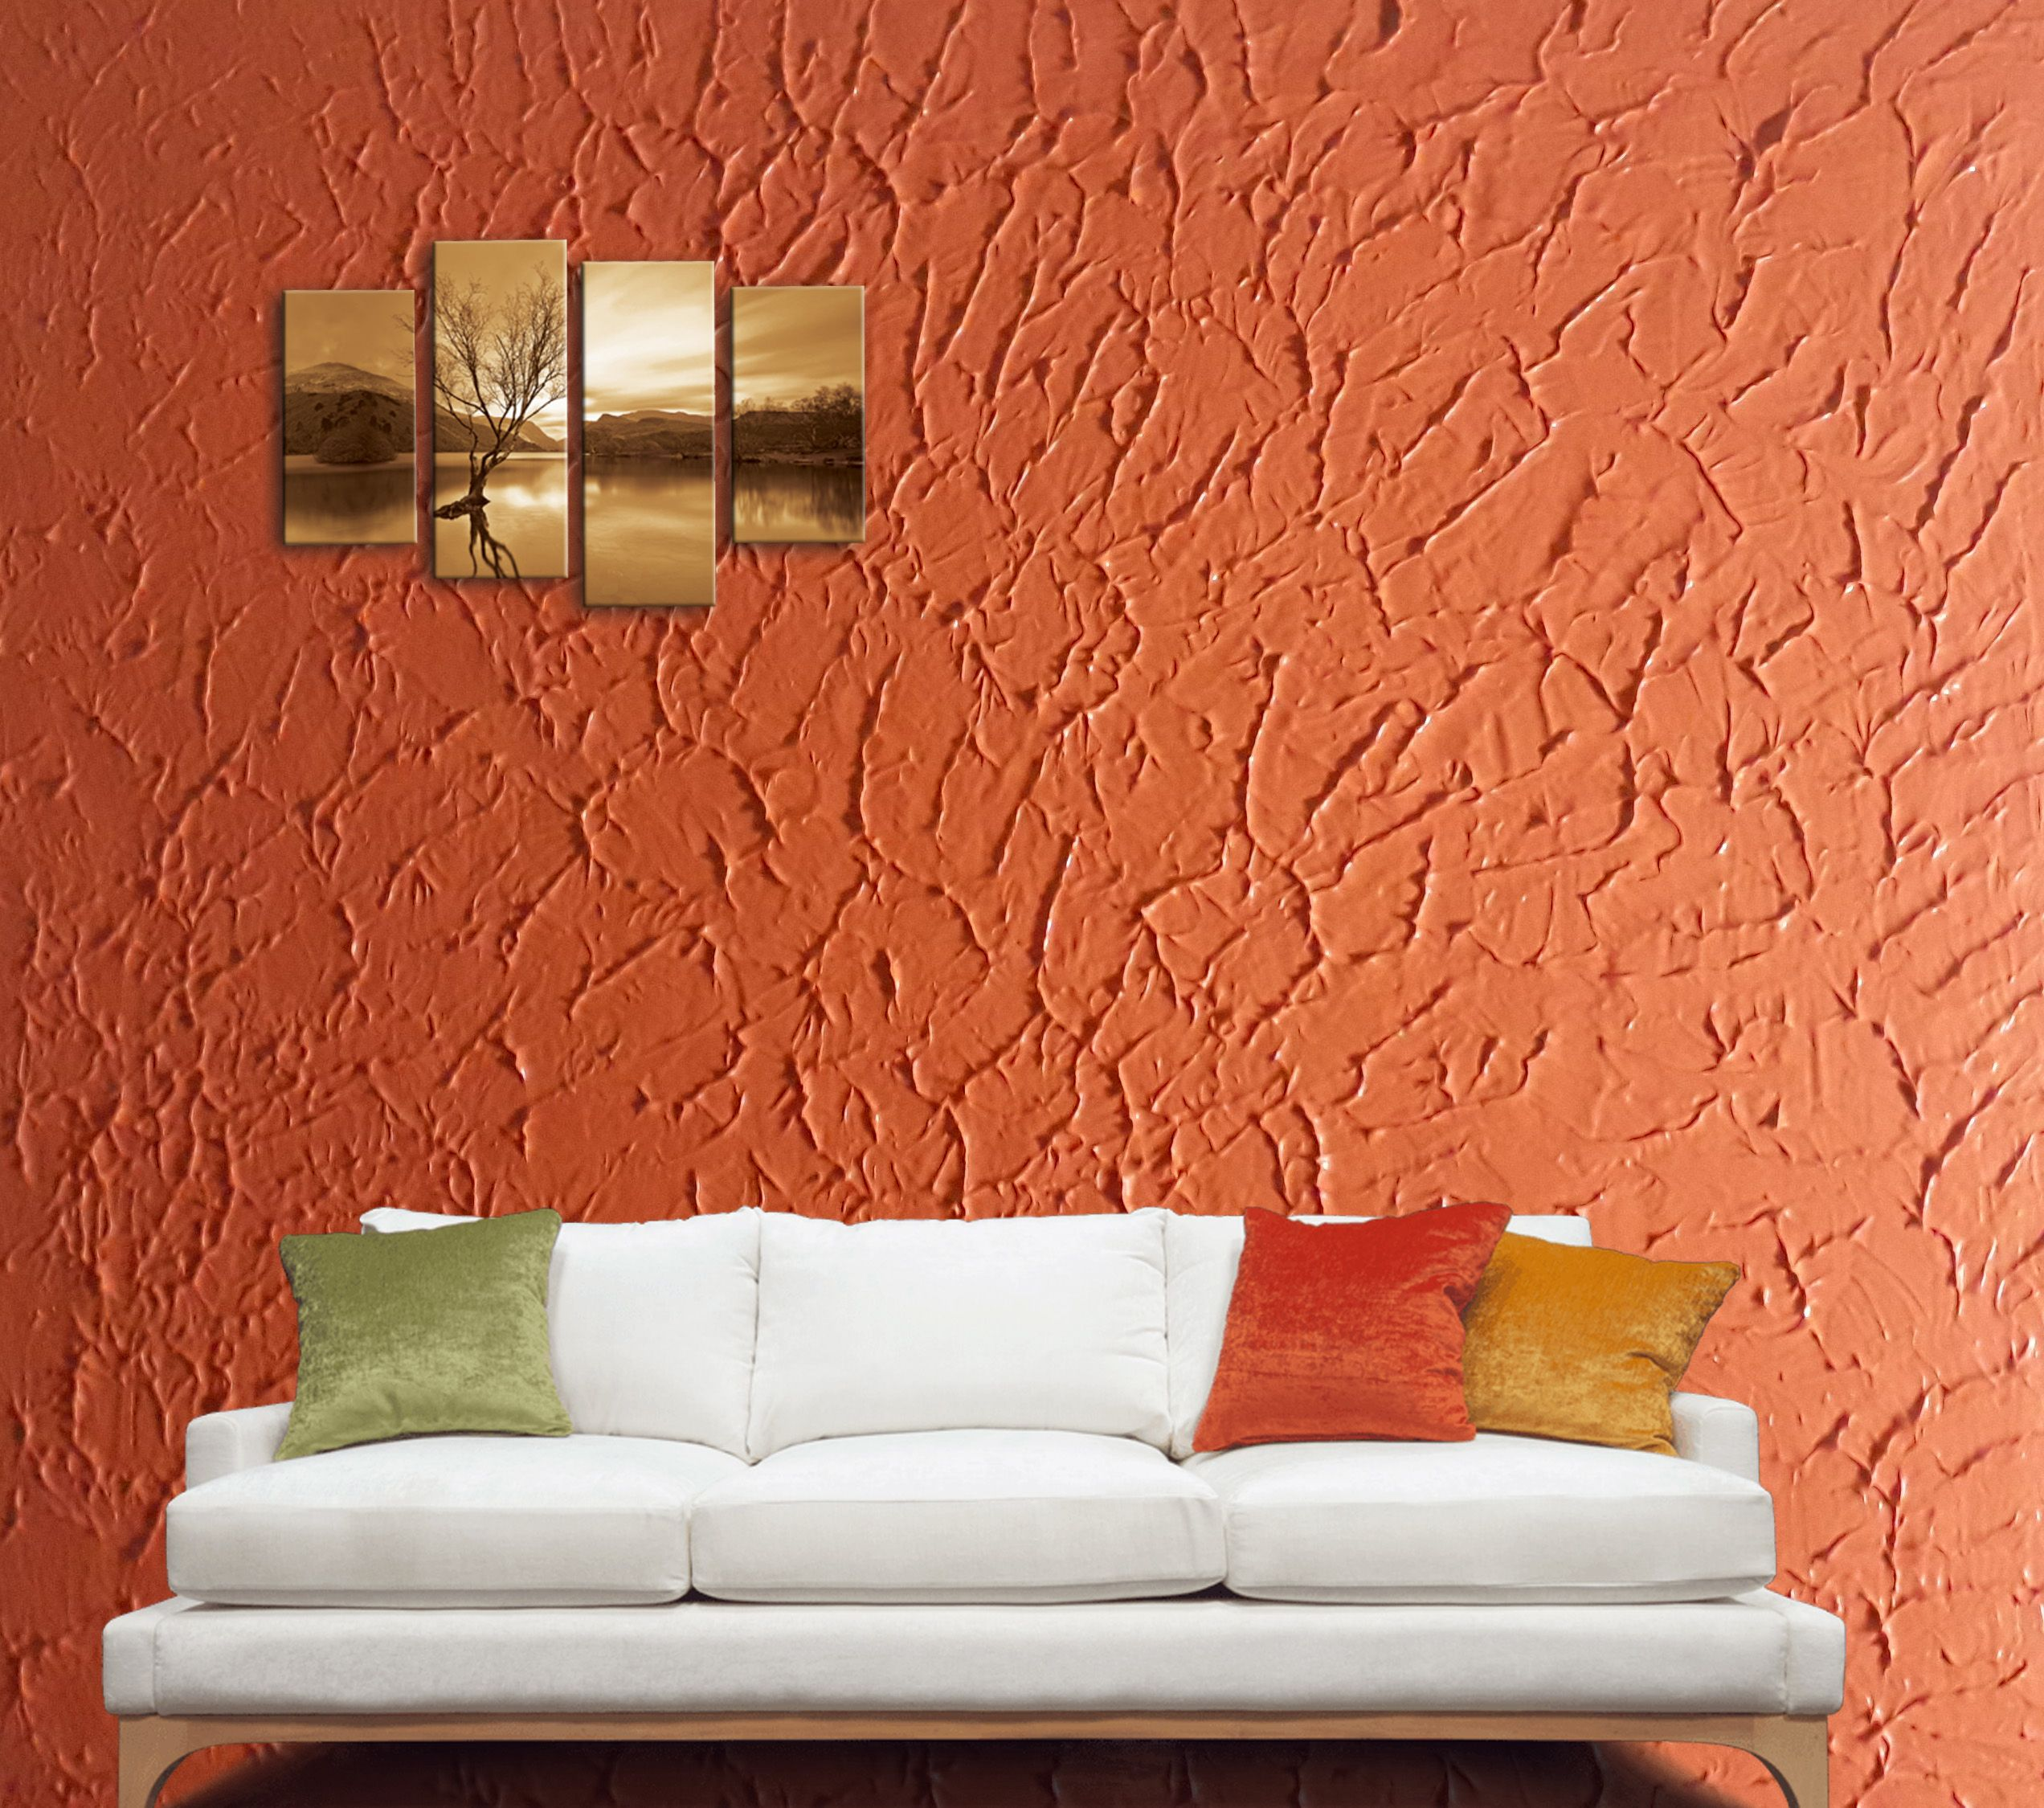 Decorative Texture On Dry Wall Asian Paint Design Wall Paint Designs Wall Design